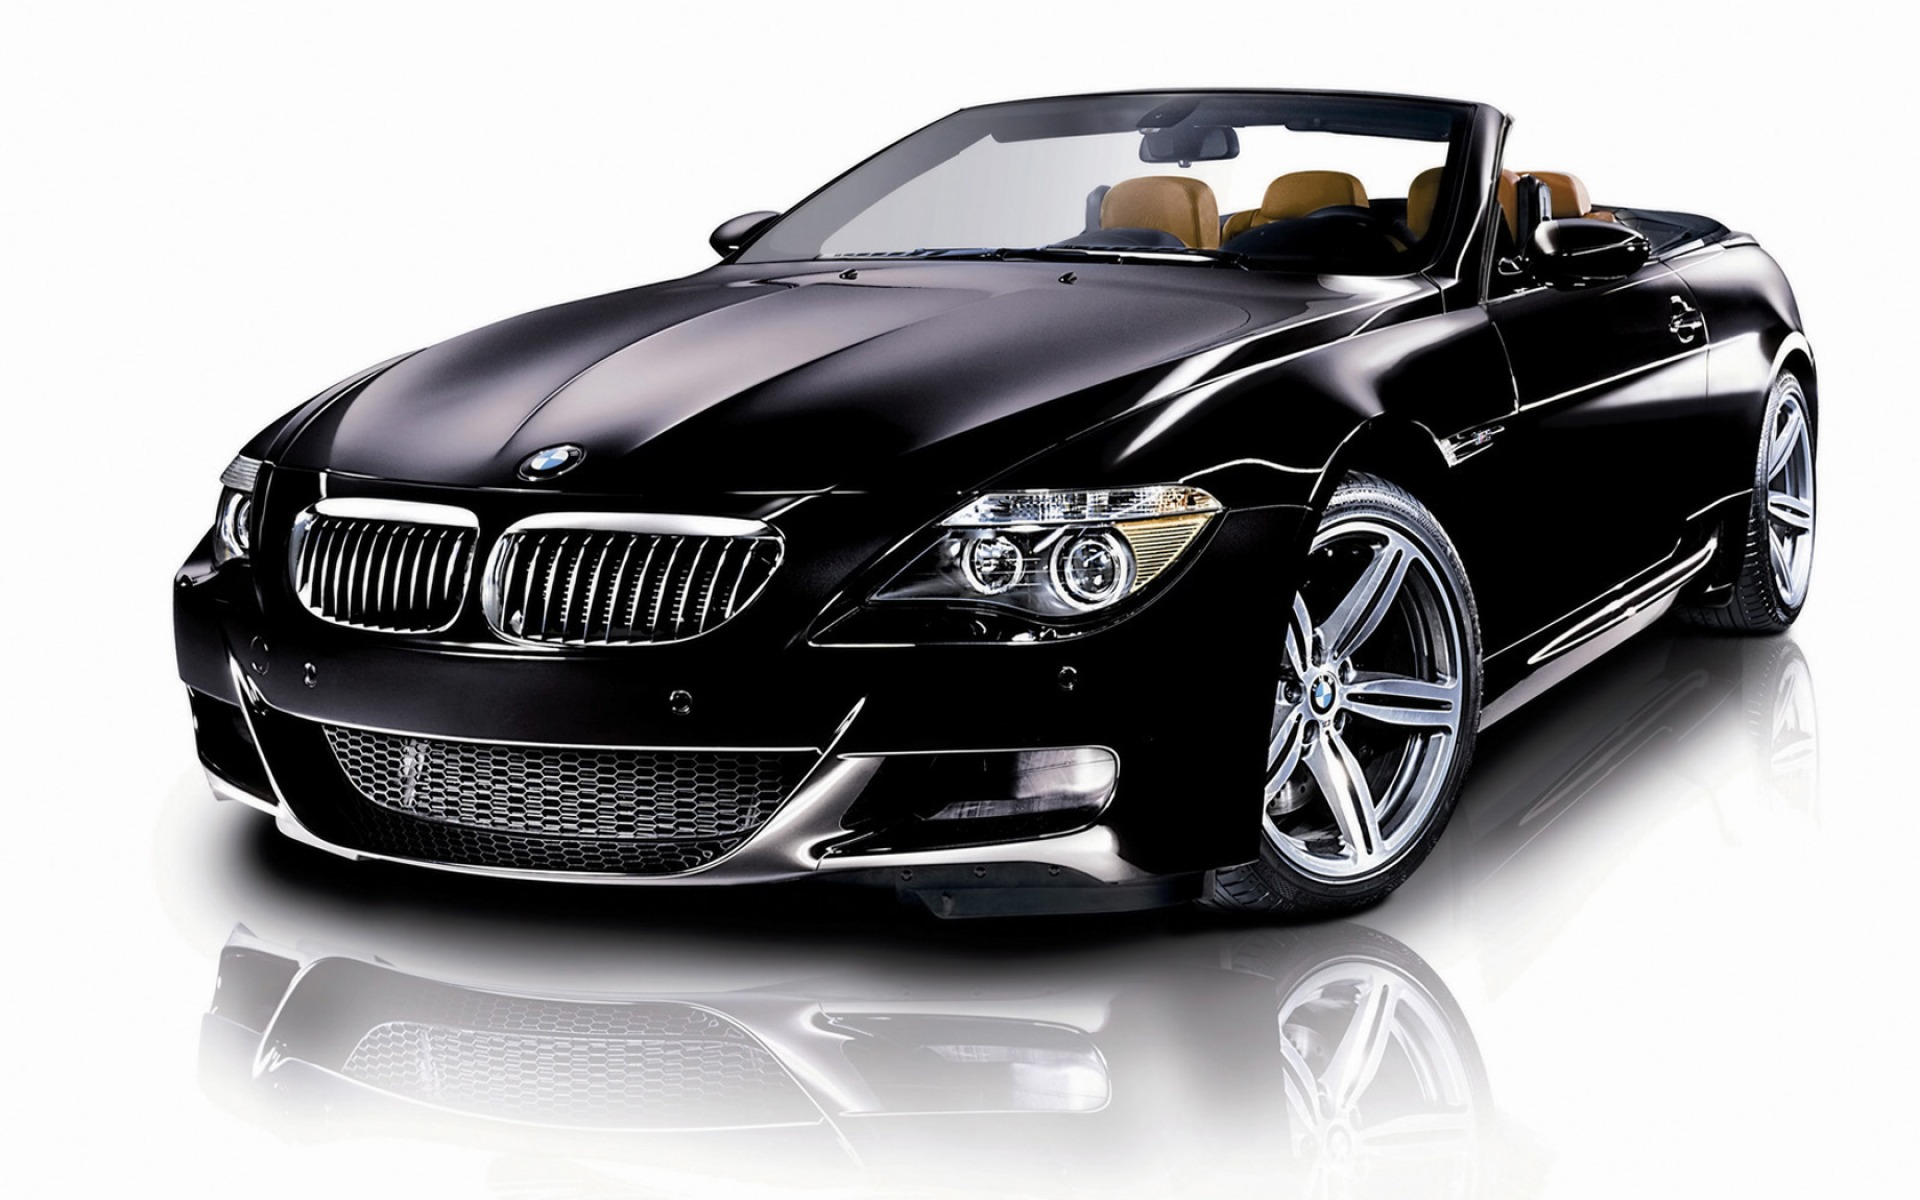 Black BMW Convertible Car